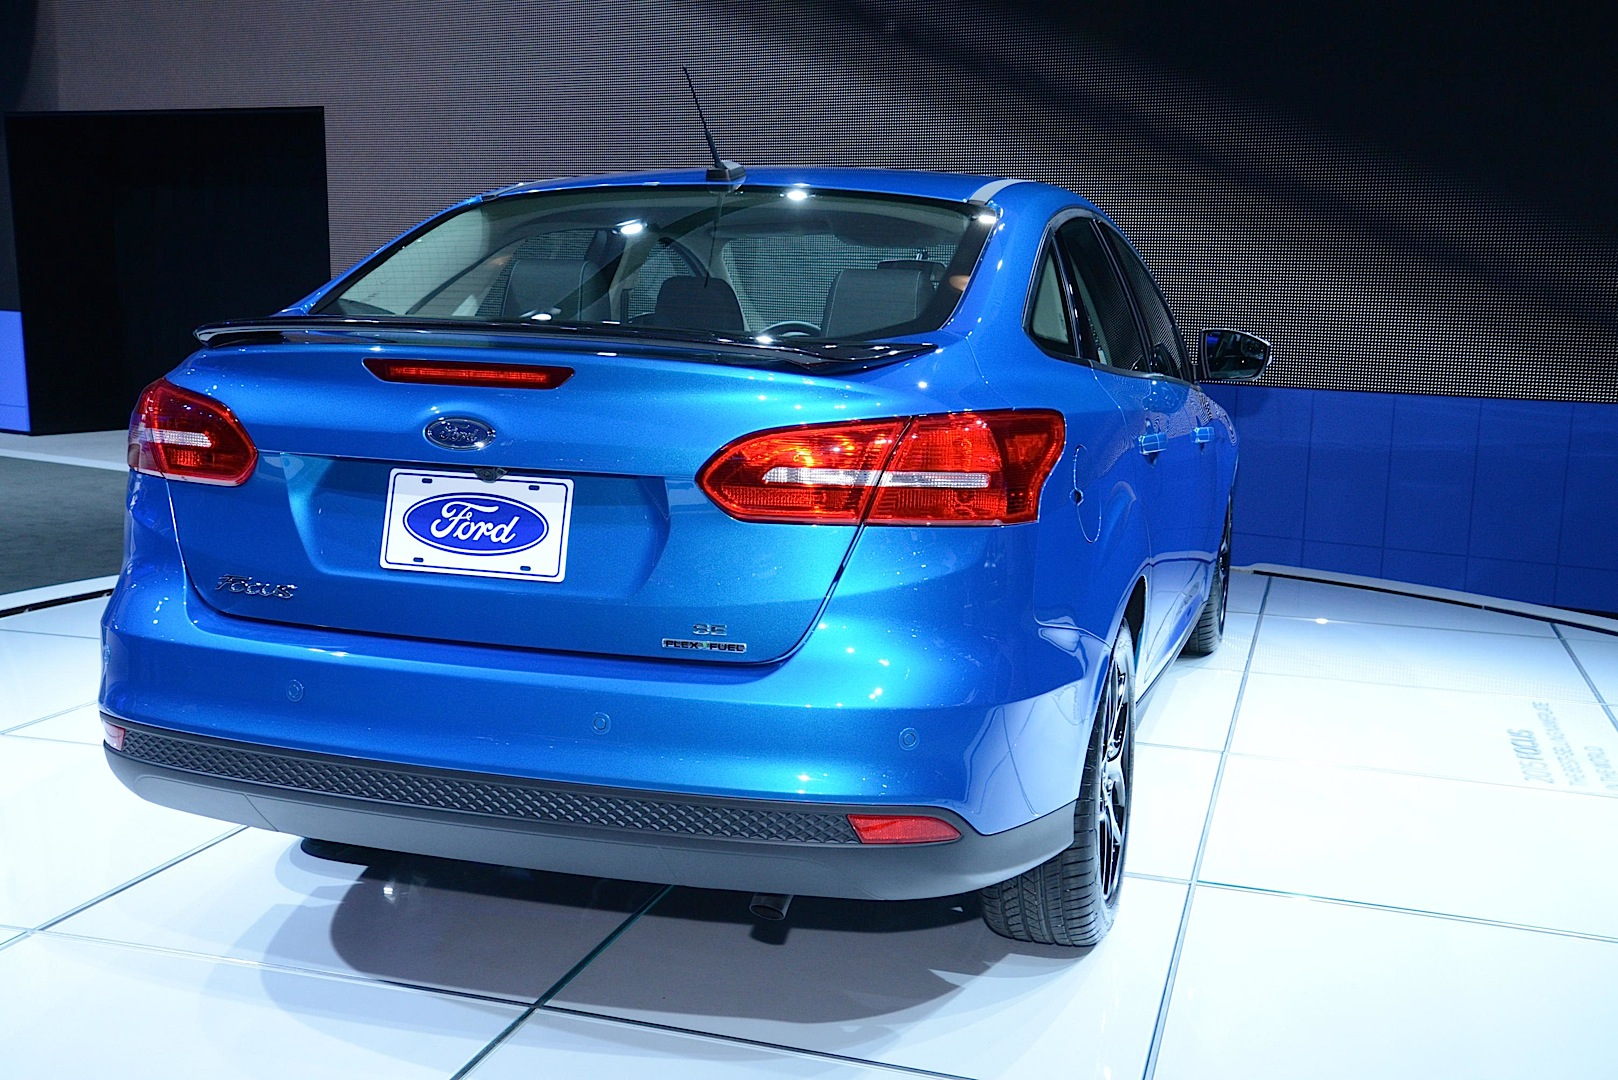 2015 ford focus sedan - 2015 Ford Focus Sedan And Electric Debut At New York Auto Show Live Photos Autoevolution